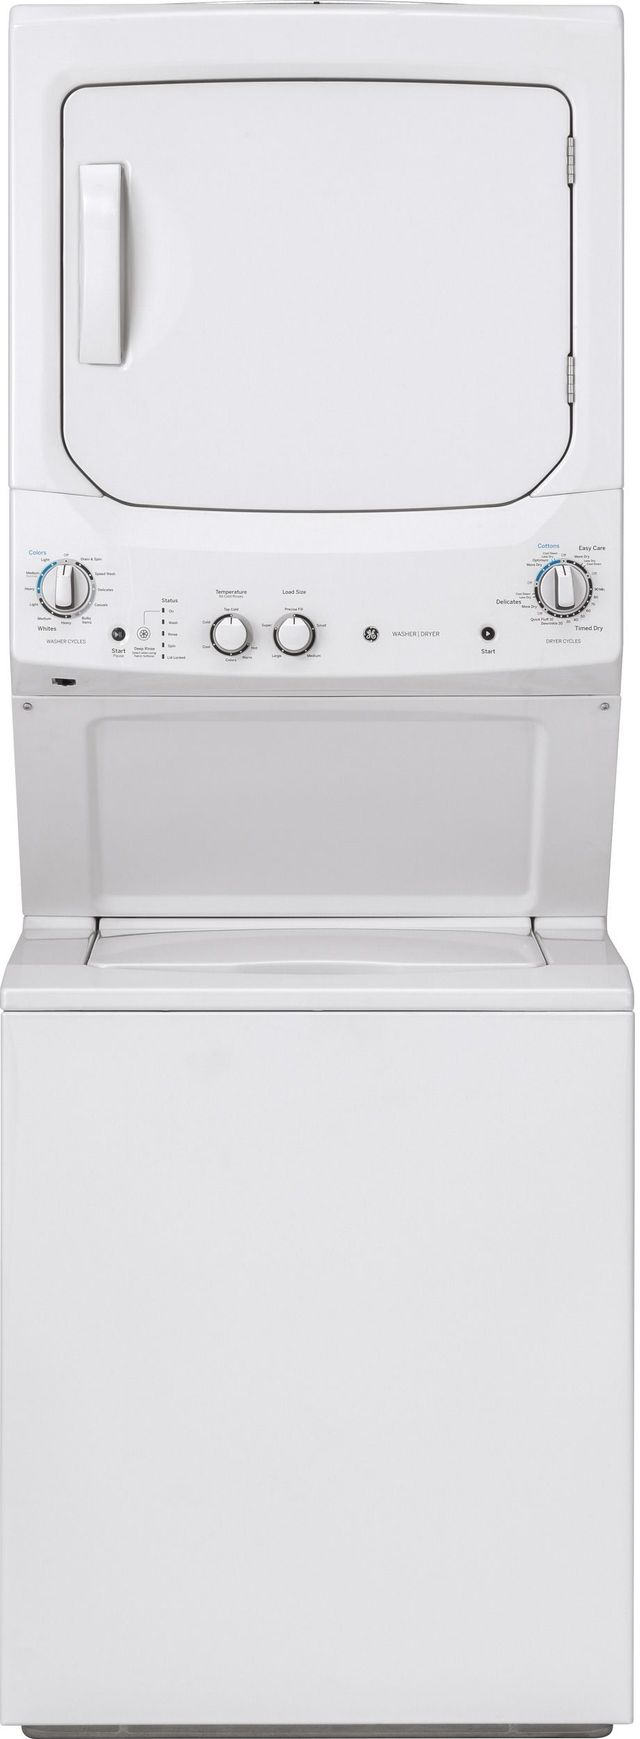 GE® Unitized Spacemaker® 3.8 Cu. Ft. Washer and 5.9 Cu. Ft. Electric Dryer-White On White-GUD27ESSMWW